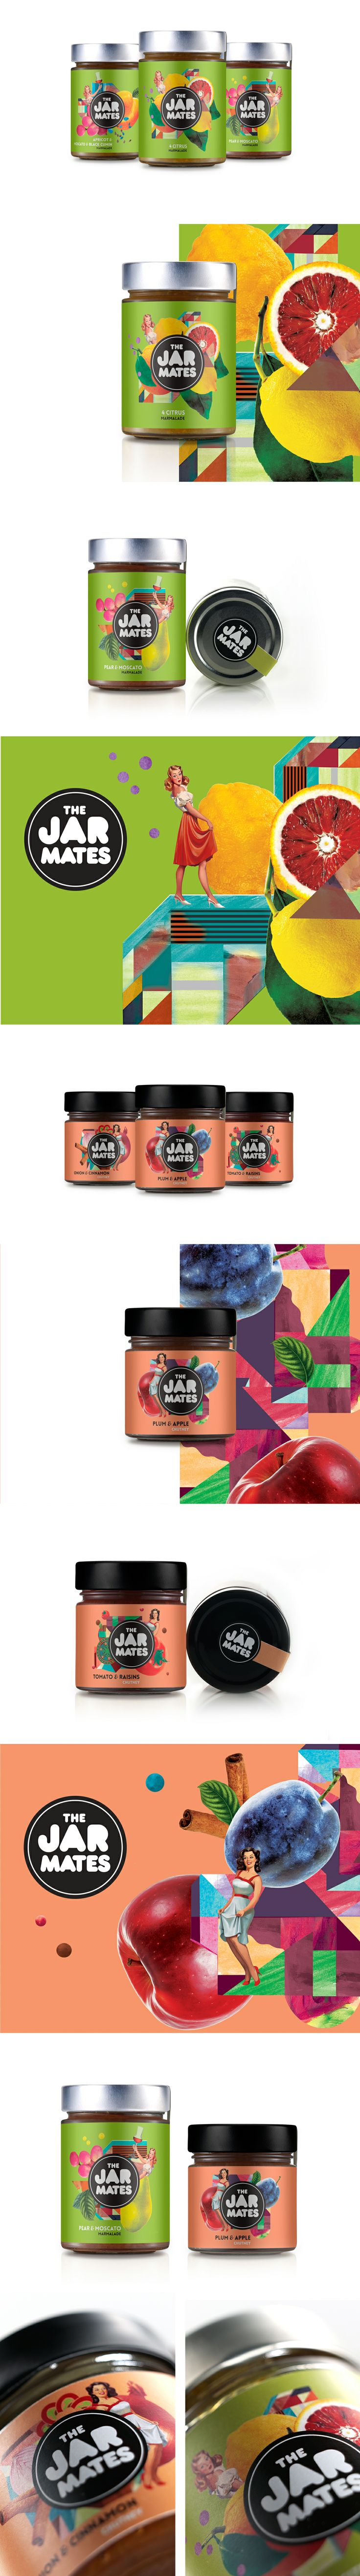 Retro JARMATES Marmalades & Chutney colorful #packaging PD